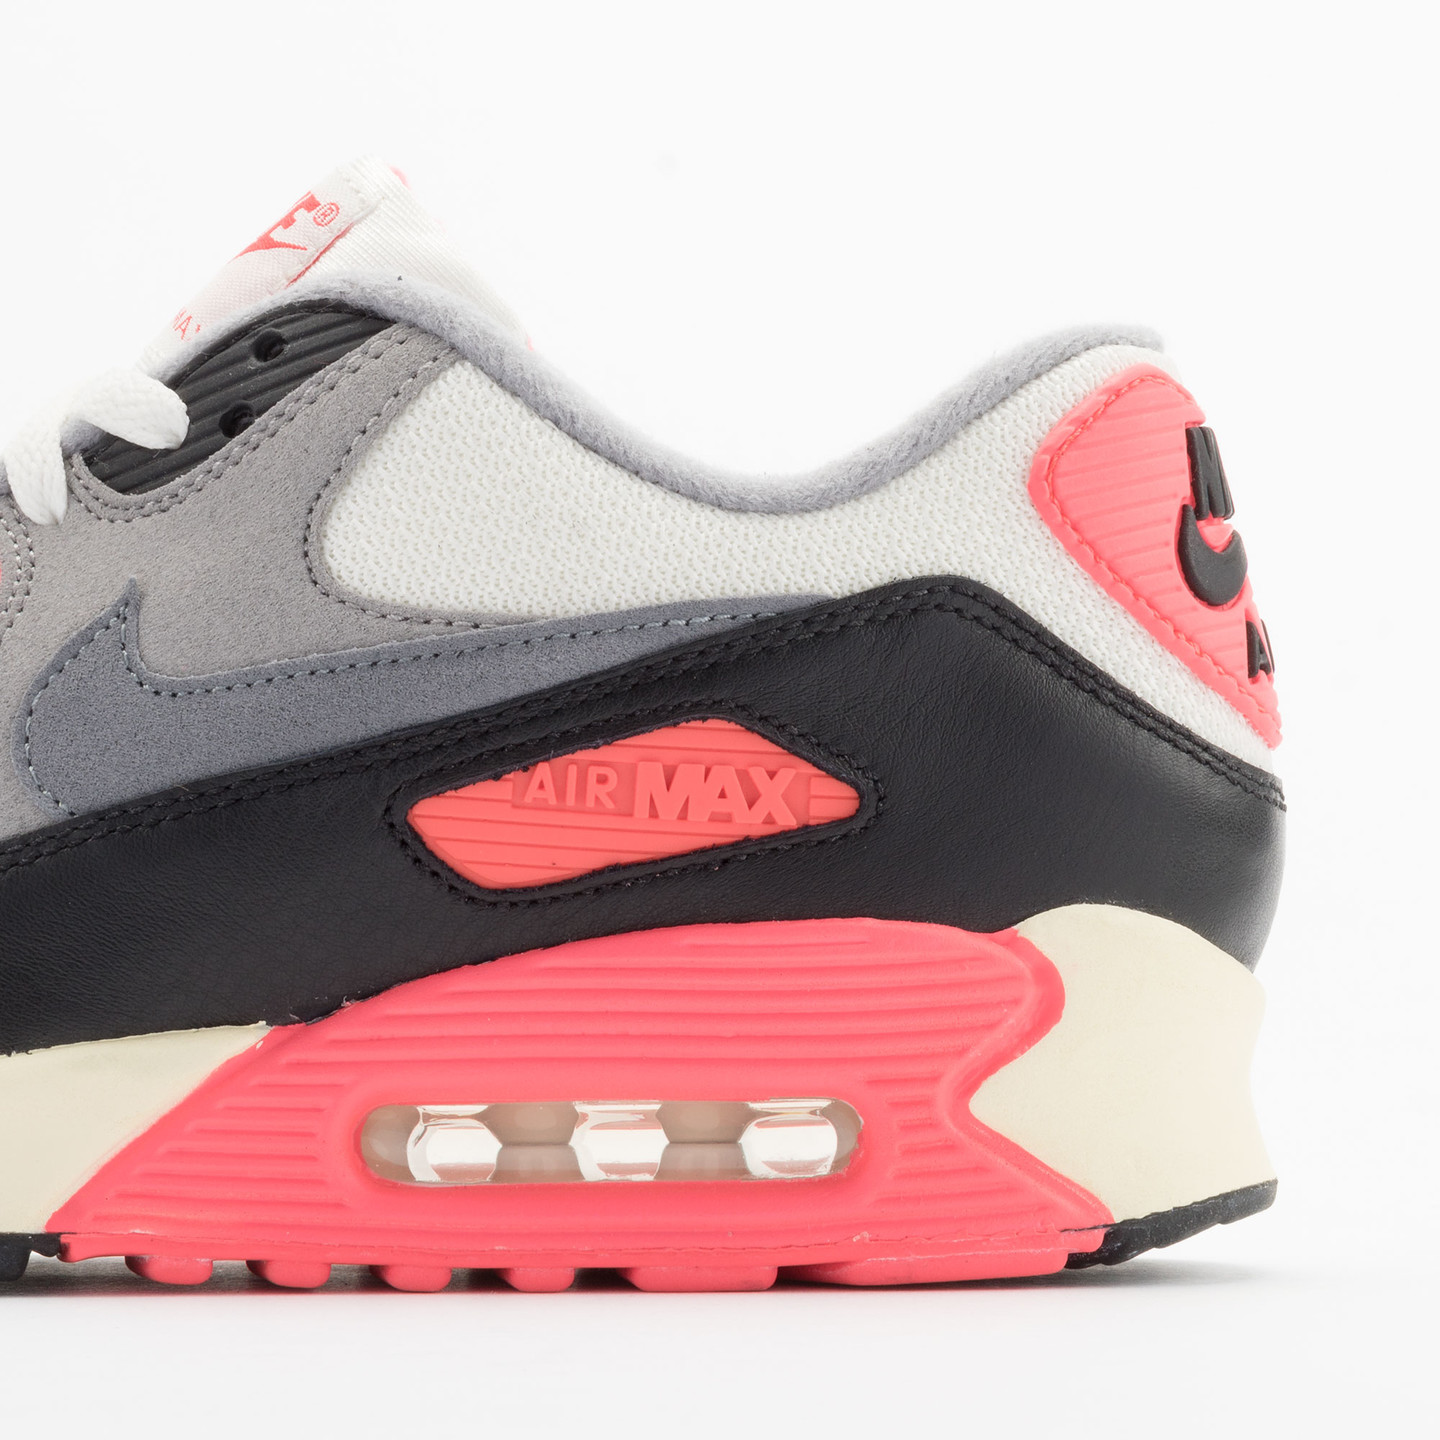 Nike Air Max 90 OG Vintage Infrared Sail/Cool Grey-Mdm Grey-Infrrd 543361-161-44.5